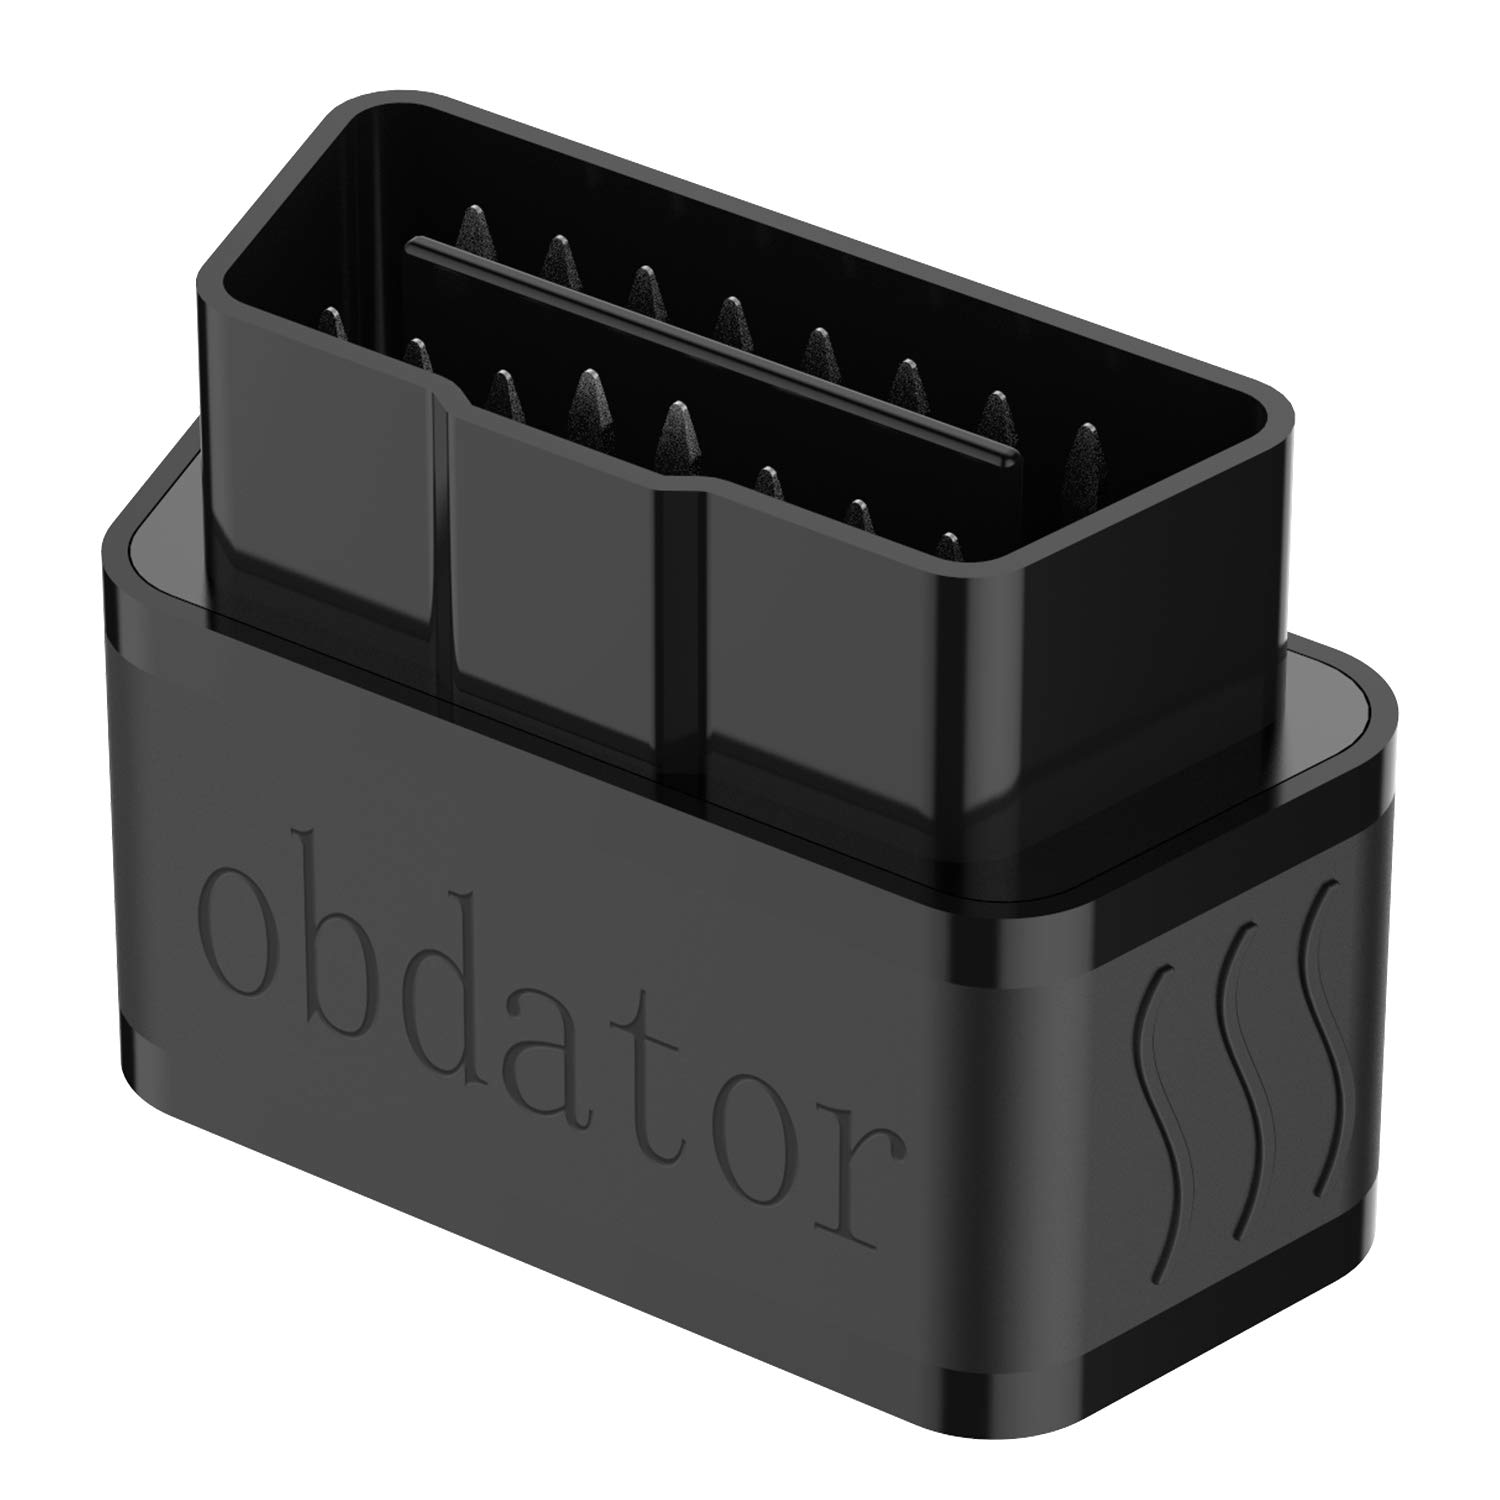 obdator WiFi OBD OBD2 Code Reader Scan Tool Car OBDII Check Engine Light Diagnostic Tool for iOS & Android